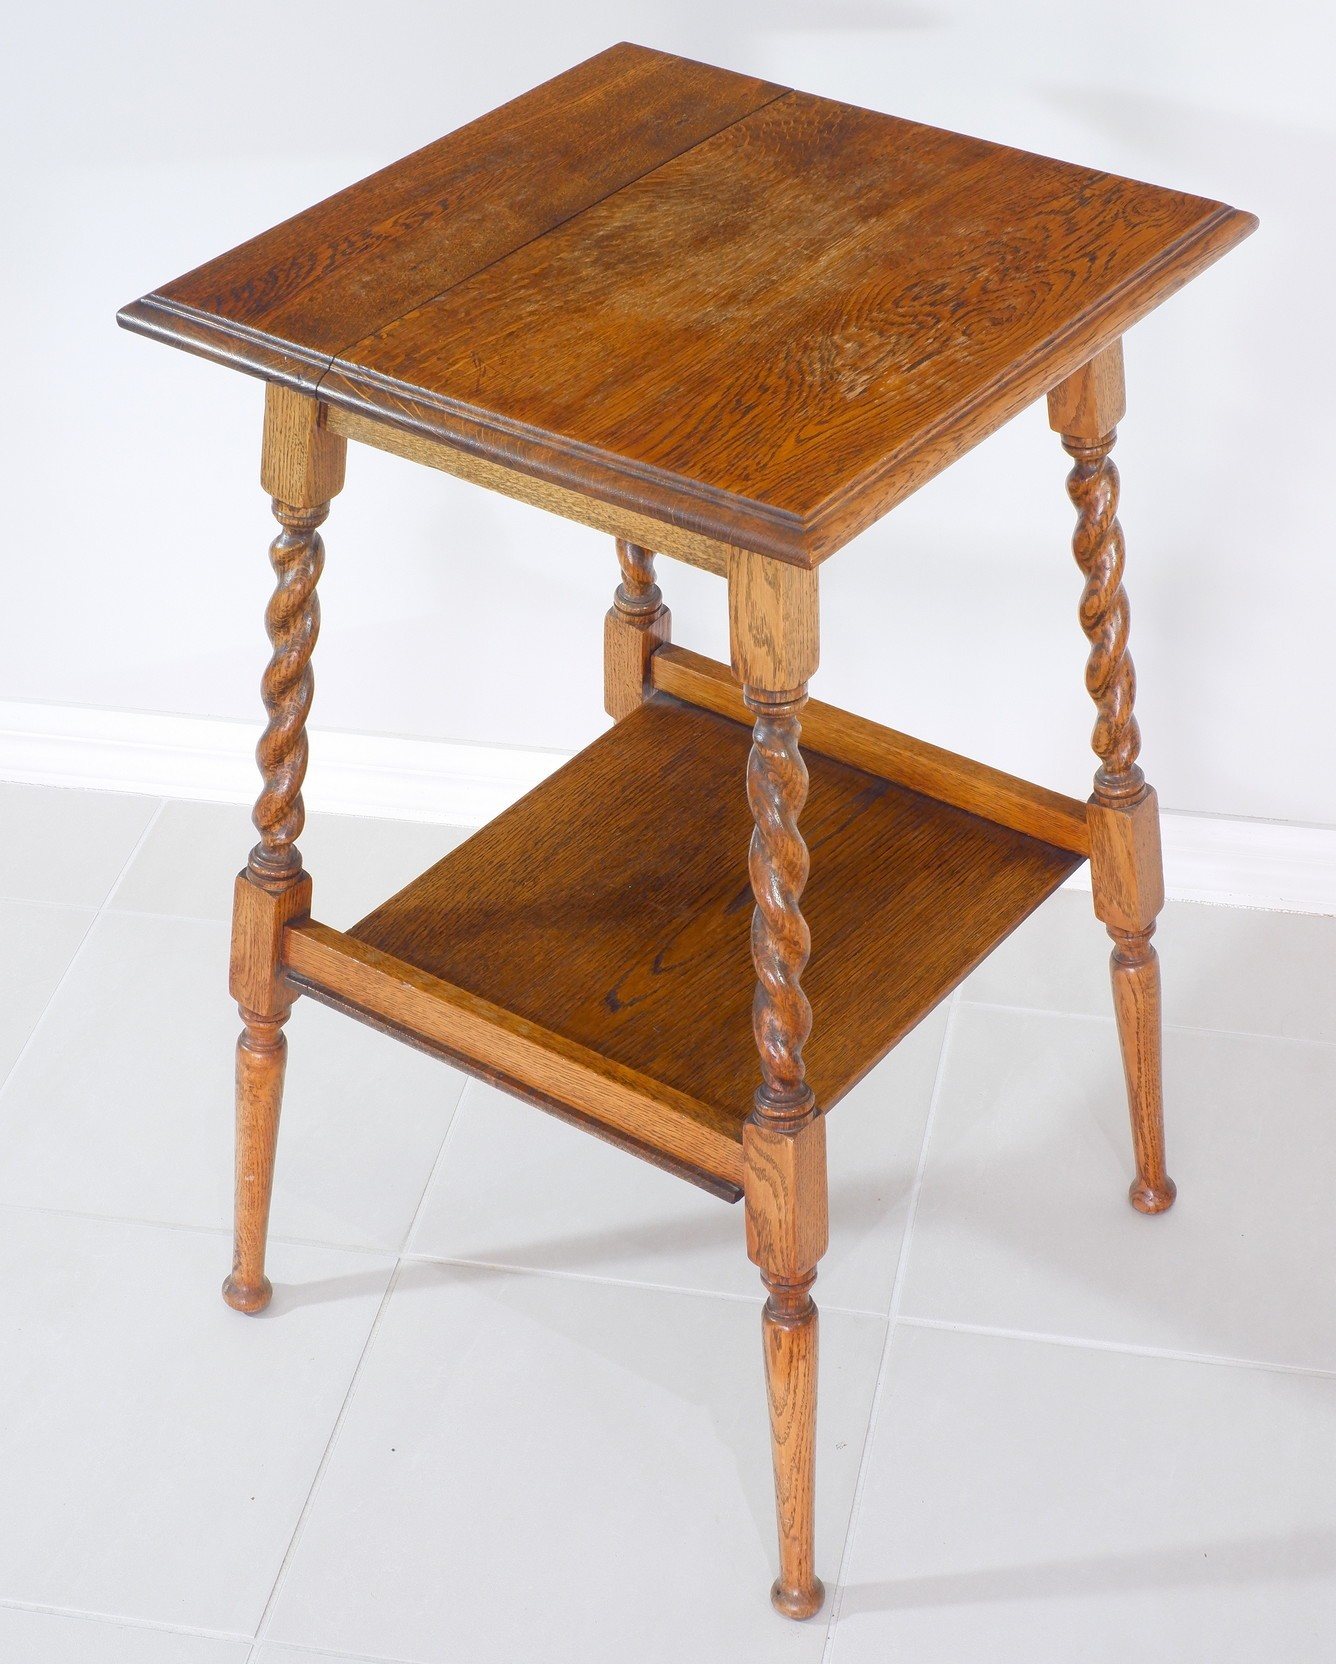 '1920s Oak Occasional Table with Barley Twist Supports'